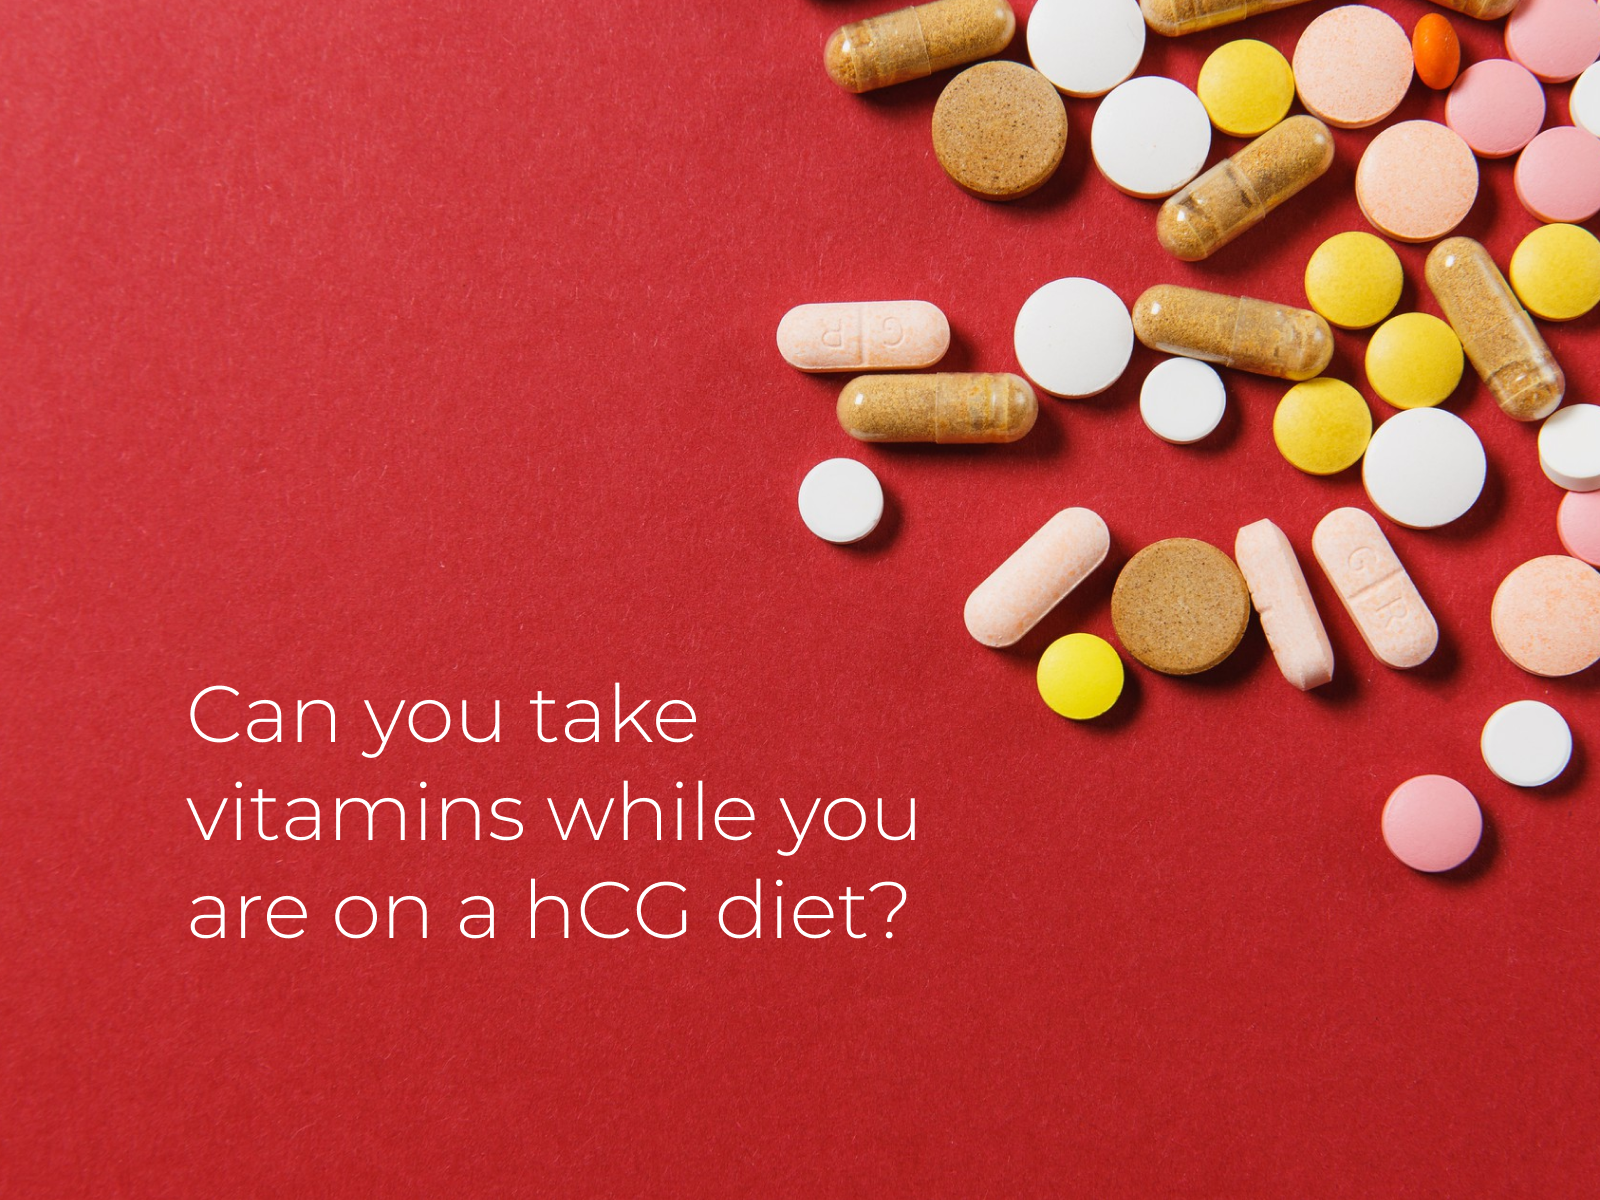 can you take vitamins while you are on a hcg diet